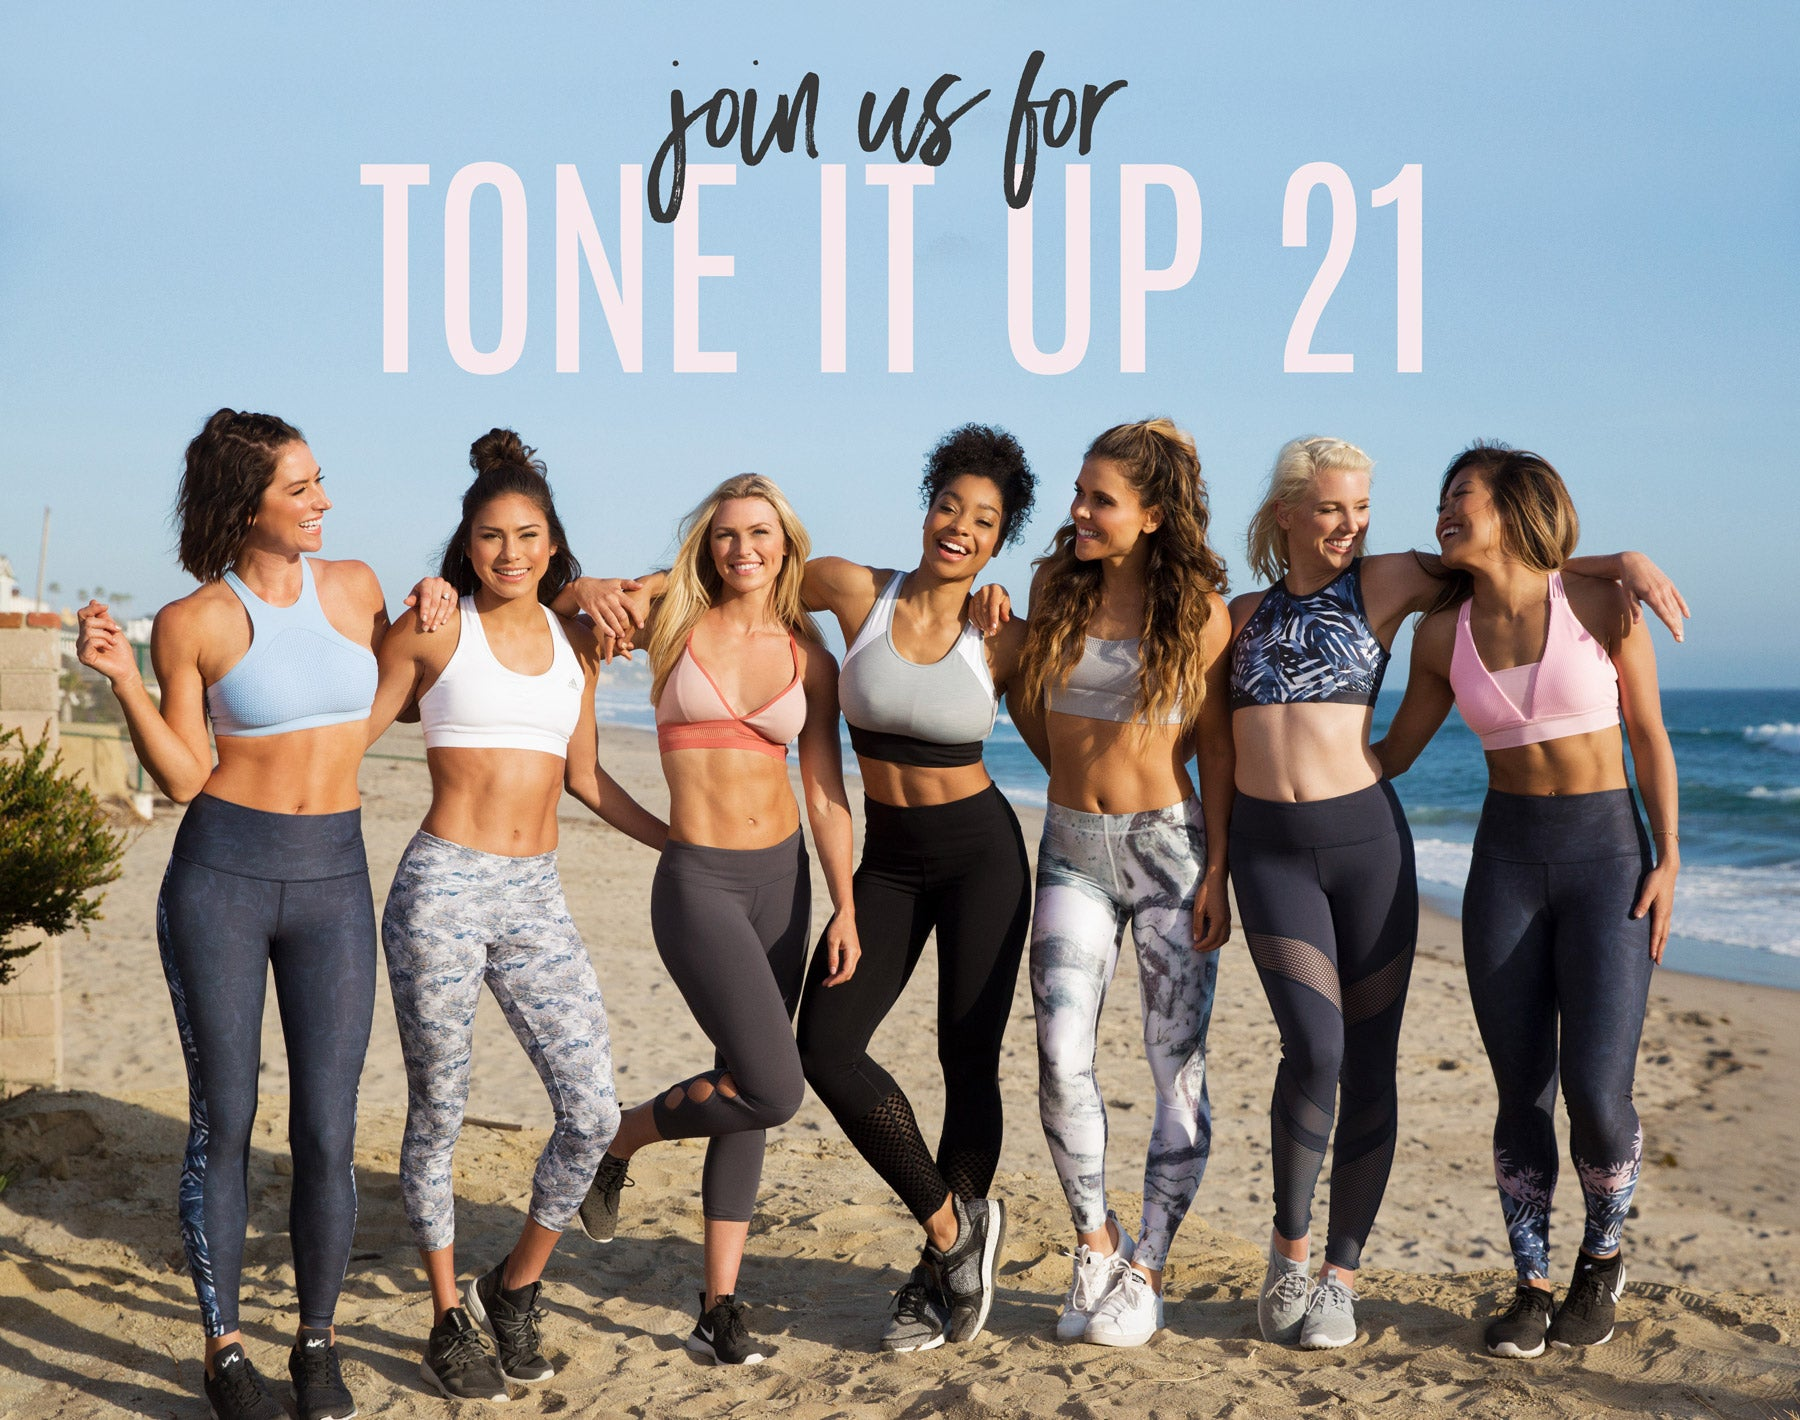 Tone It Up 21 Sign Up